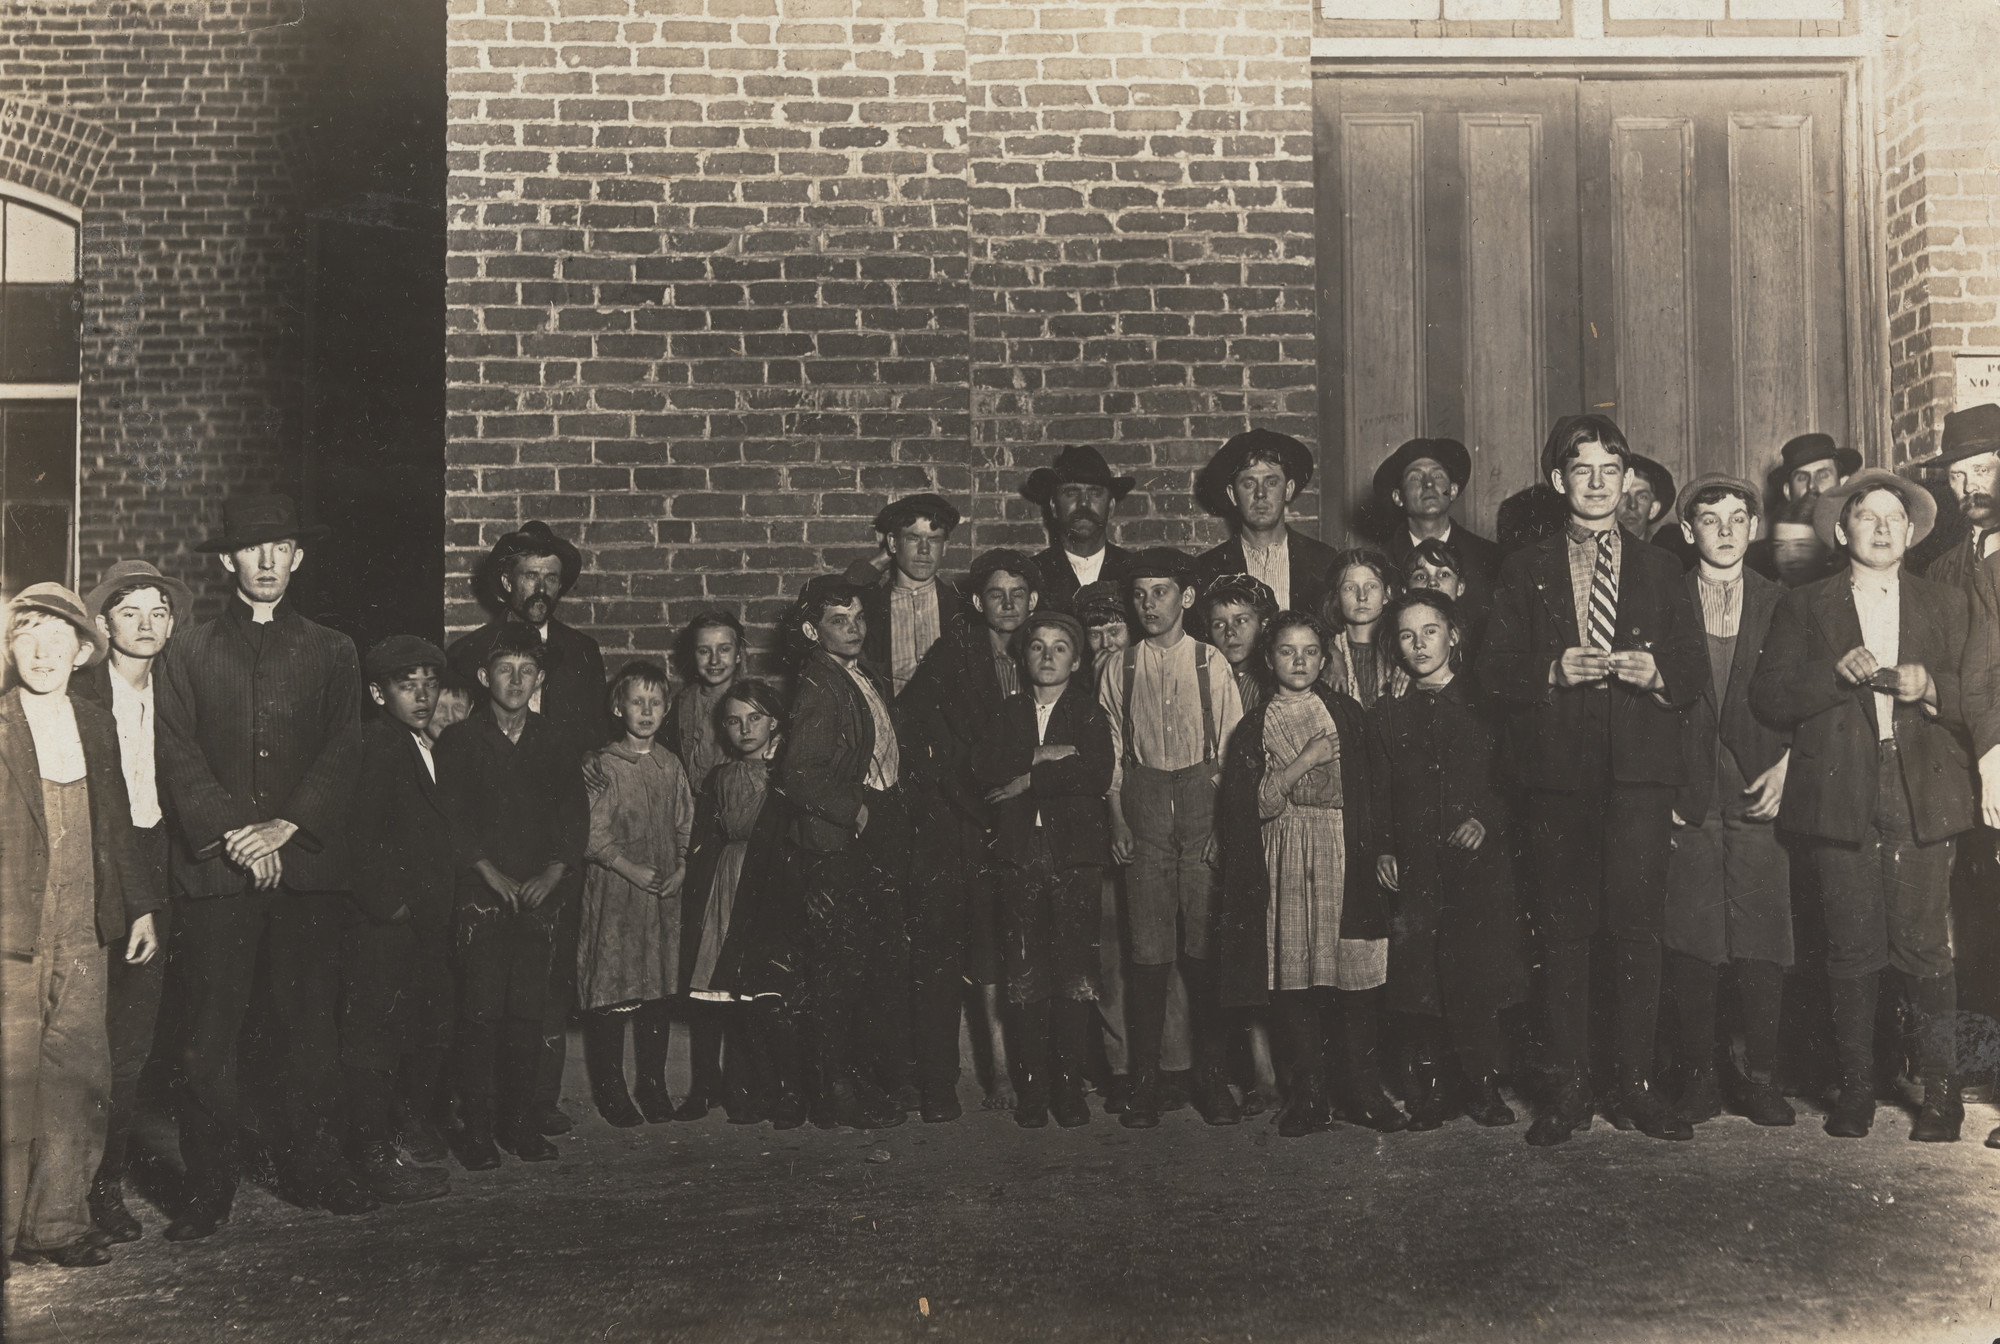 Lewis W. Hine. Clinton Mills, Clinton, South Carolina. December 1908